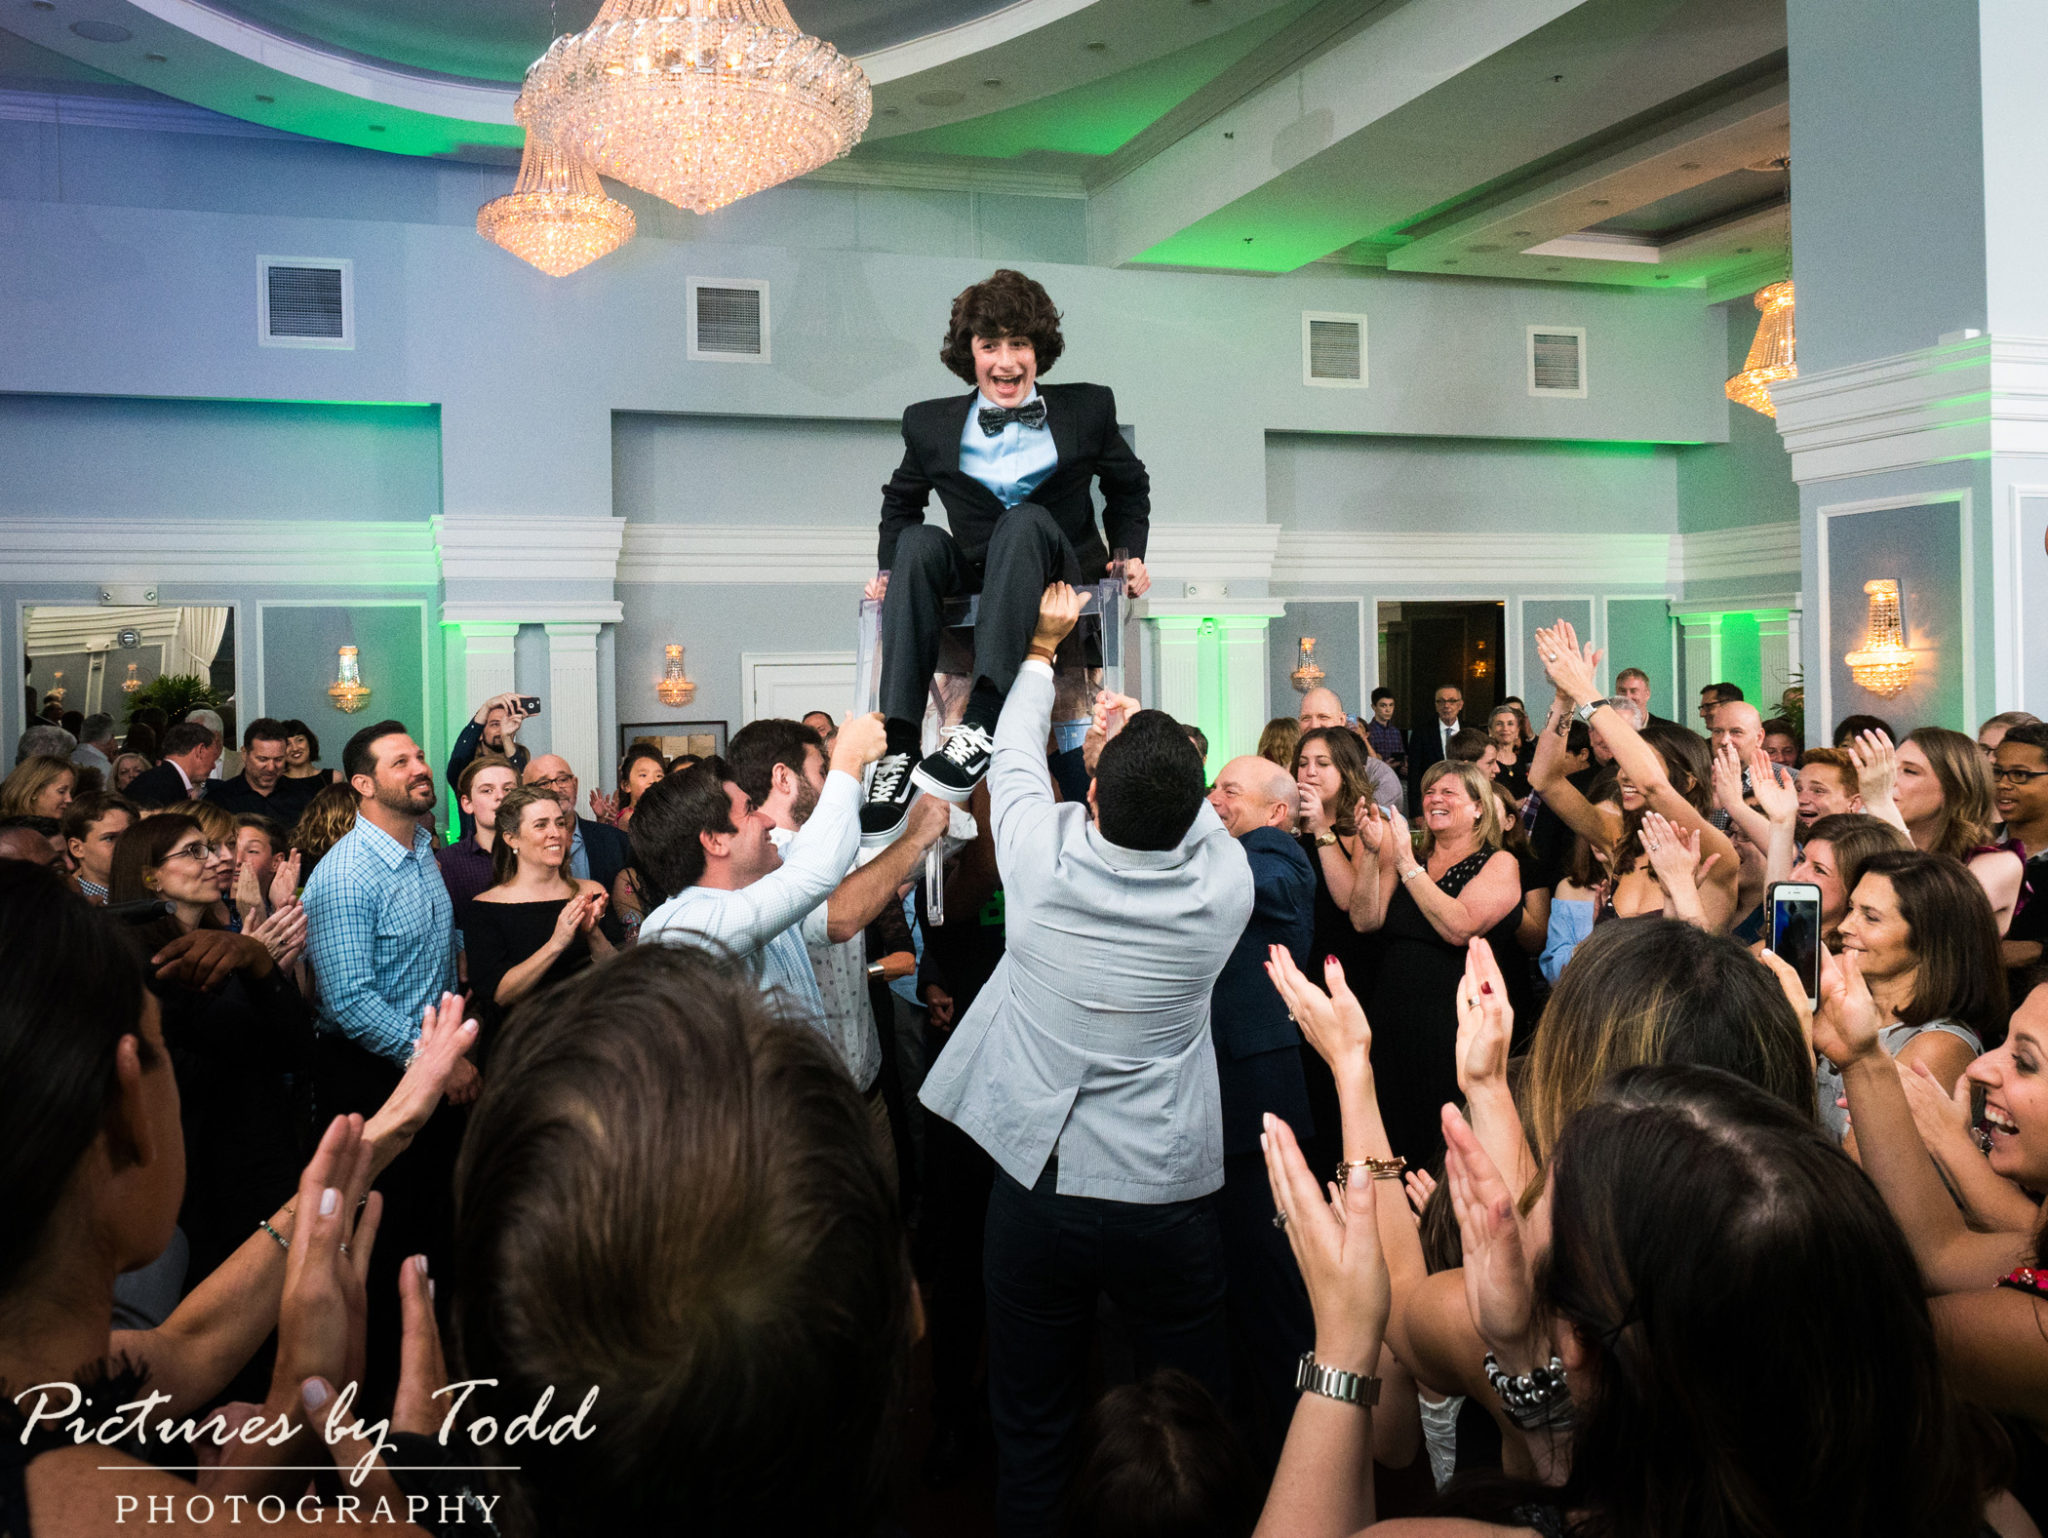 Pictures by Todd Photography  Blakes Bar Mitzvah  Arts